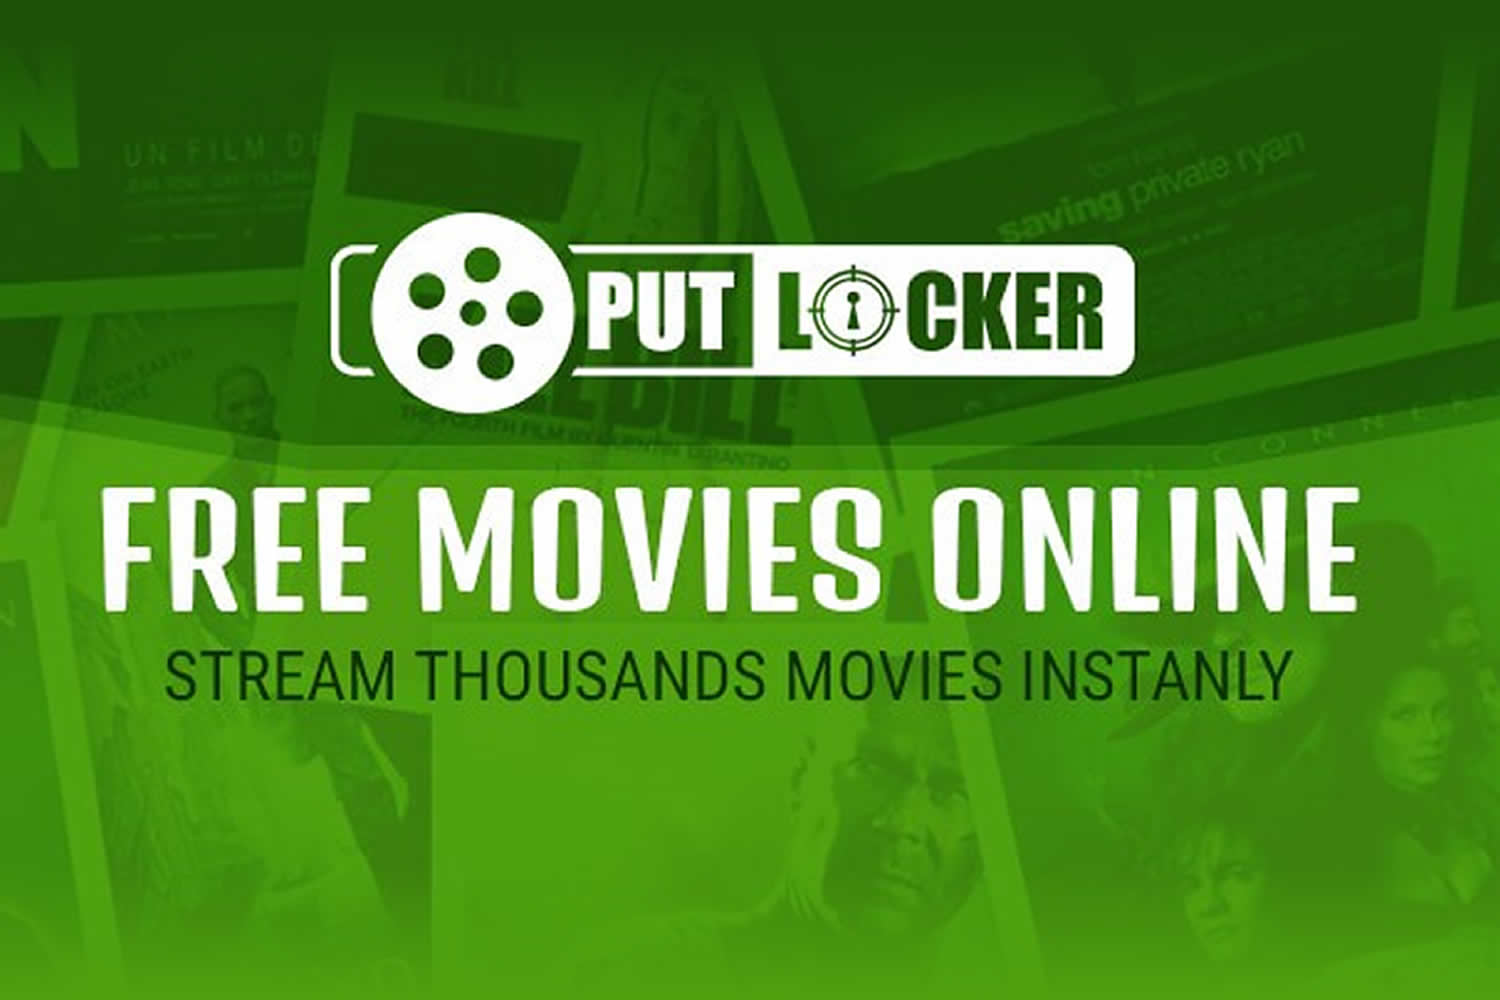 Watch De nacht van Aalbers Putlocker Movies